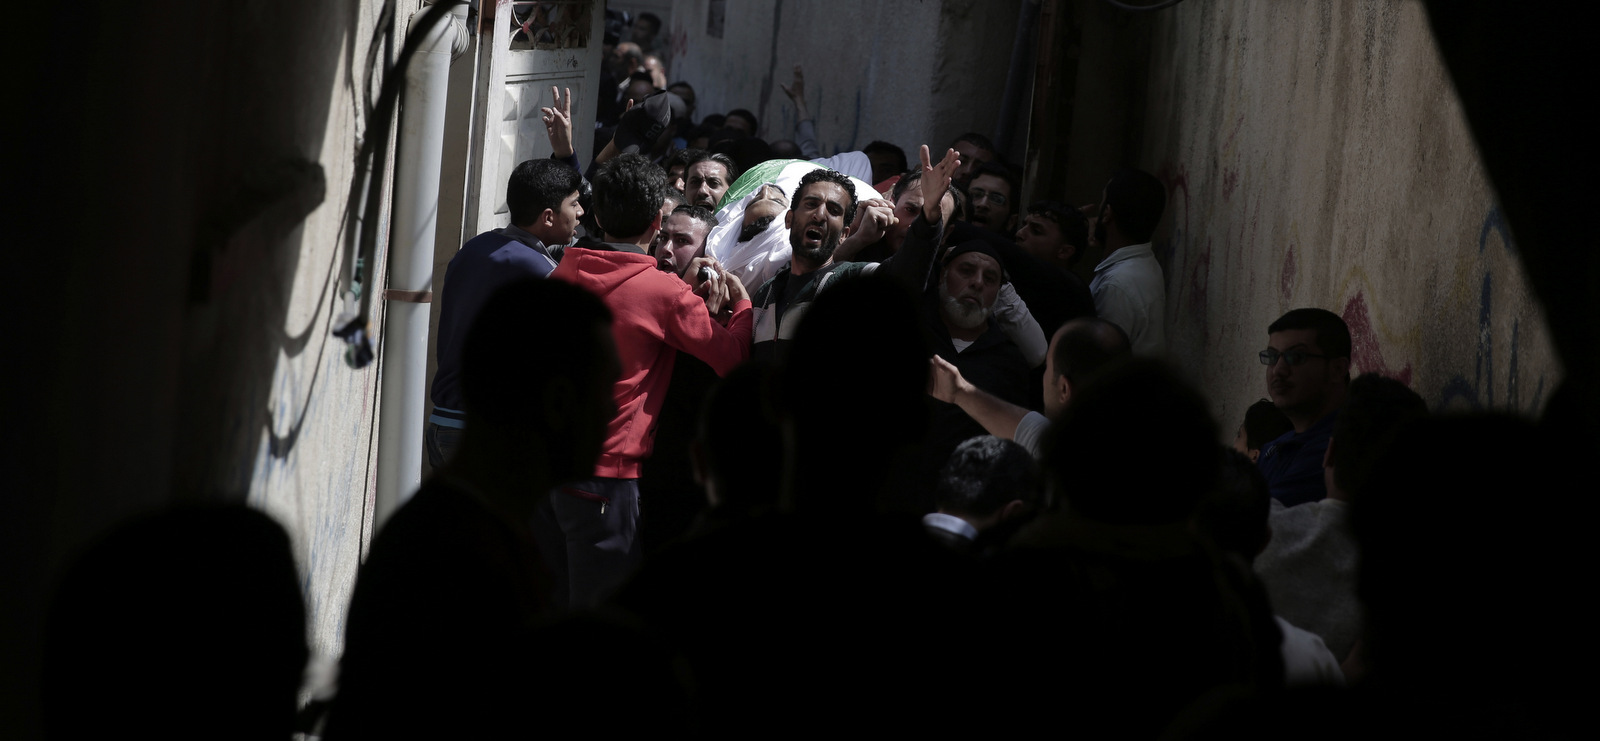 As Humanitarian Crisis Deepens, US Refuses to Say There Are Civilians in Gaza